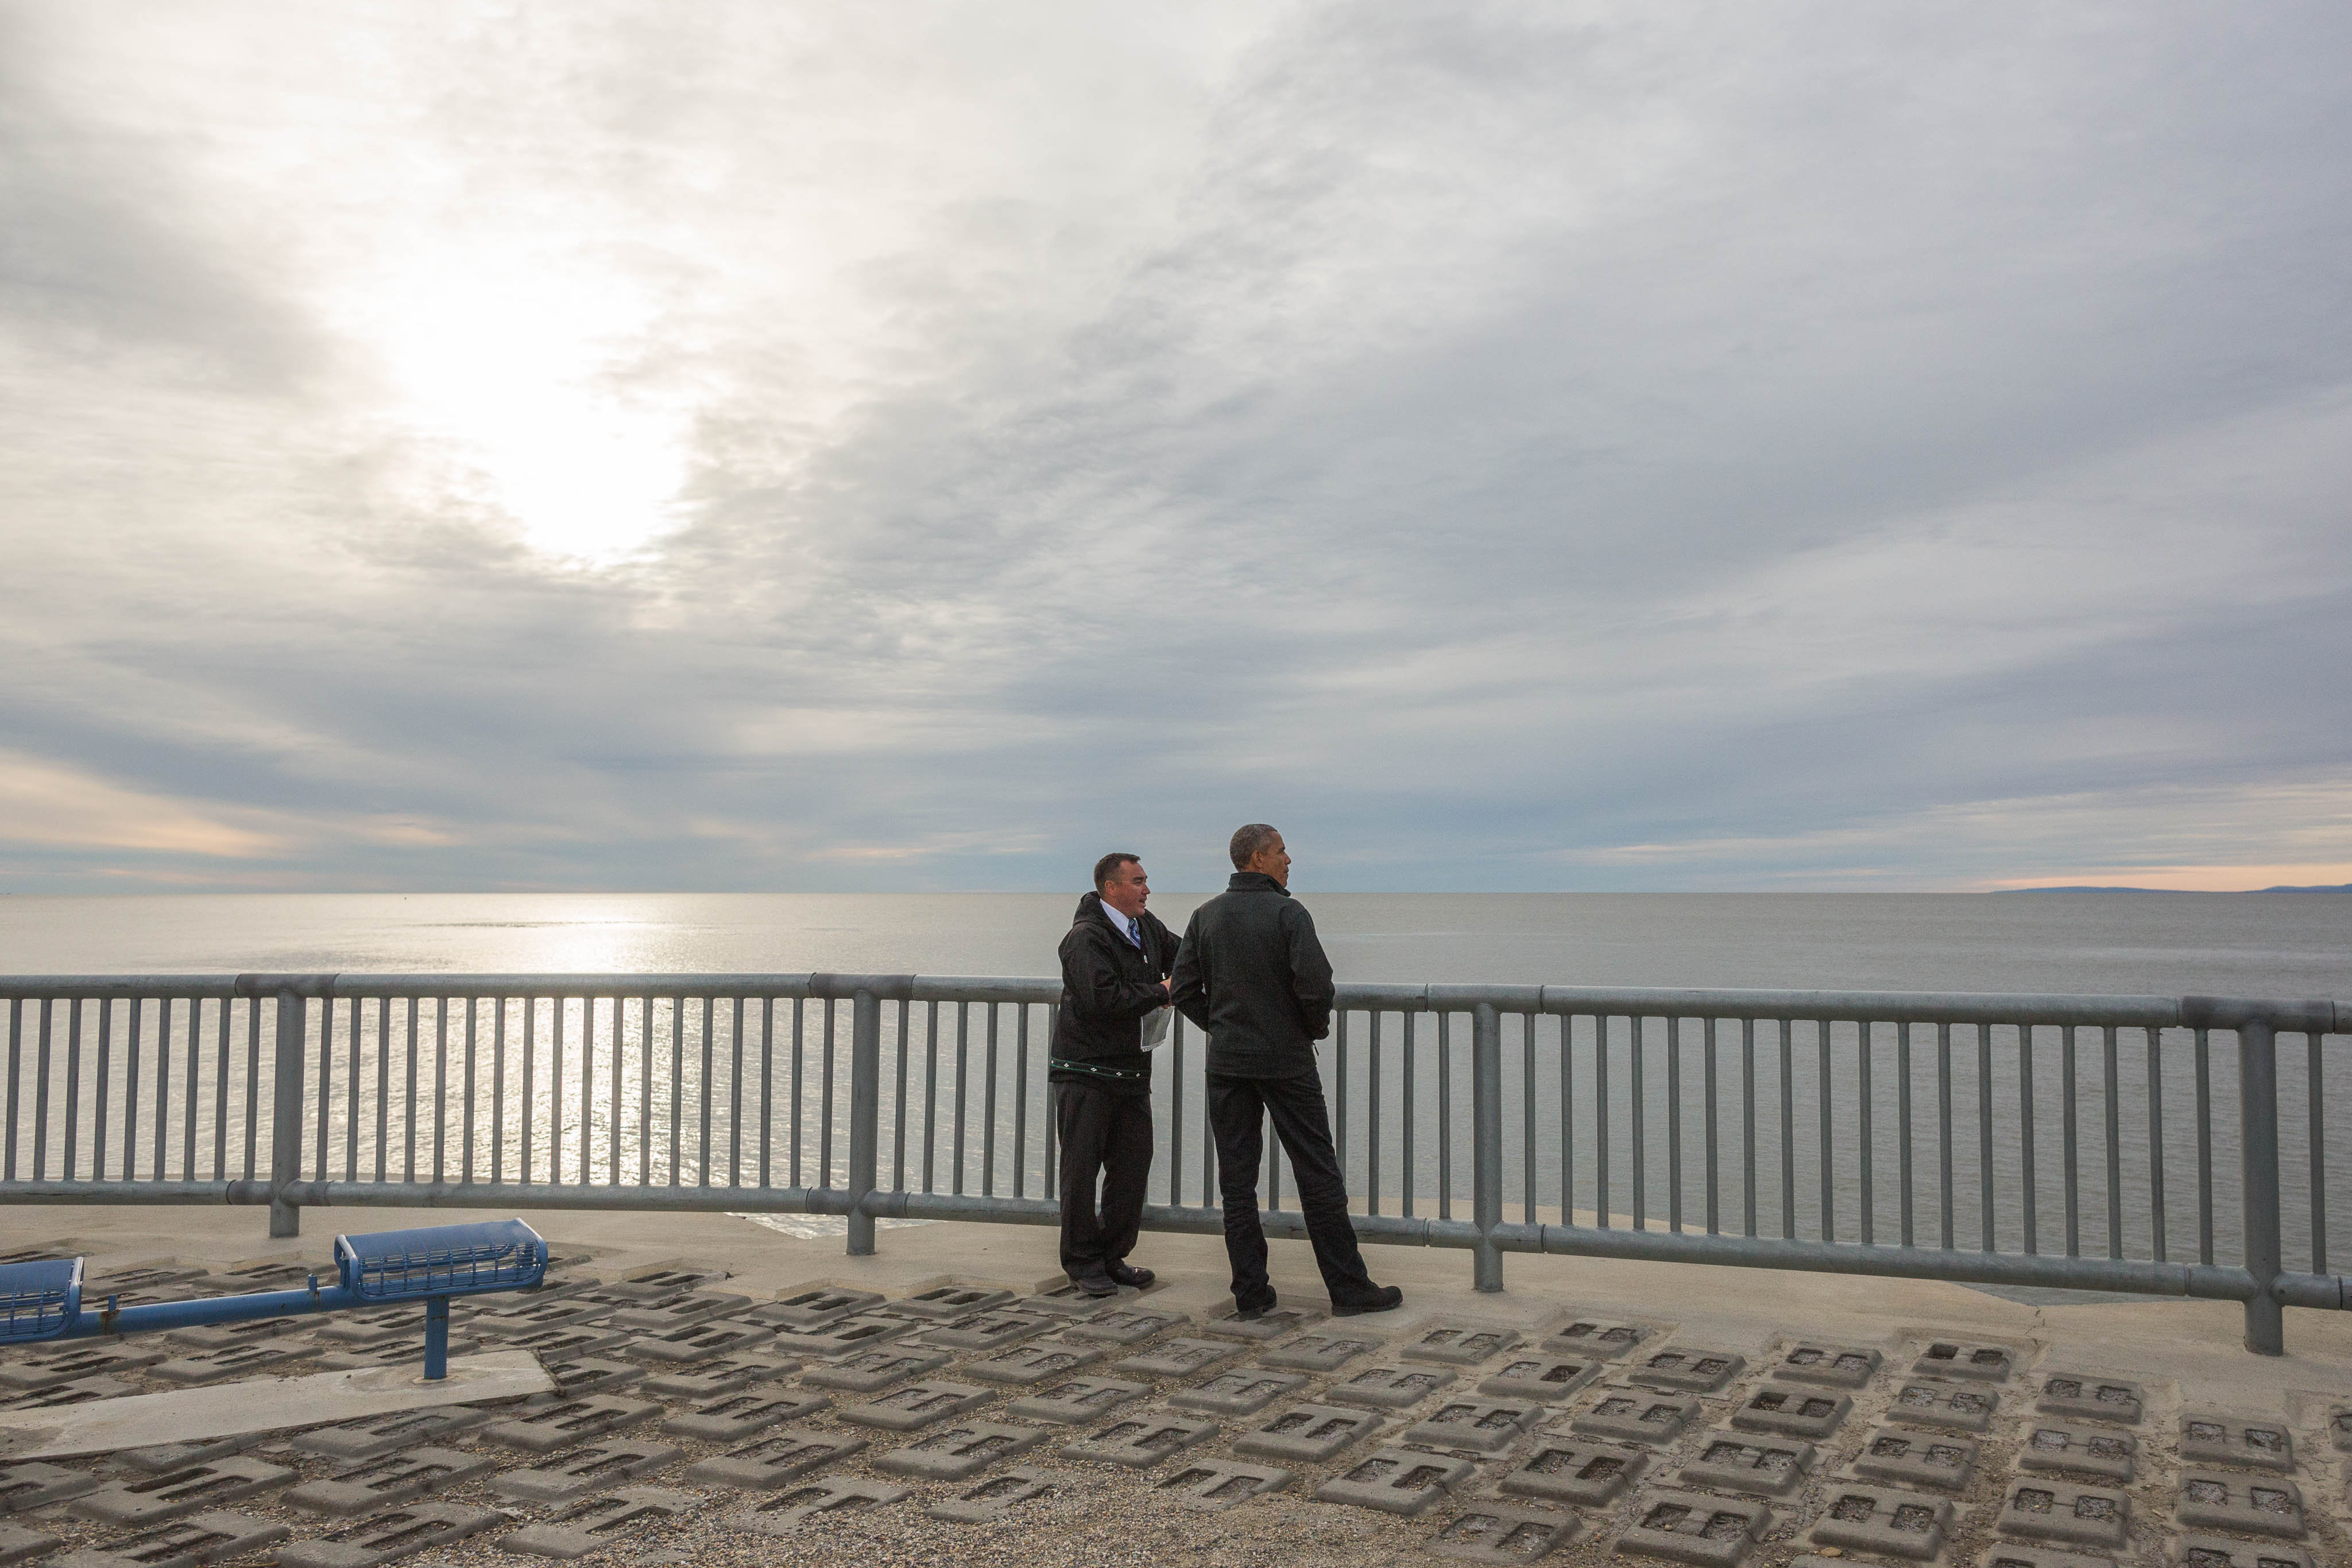 With Kotzebue City Manager Derek Martin, President Obama views the seawall that protects the community from winter storm surges on Wednesday, September 2, 2015. (Loren Holmes / Alaska Dispatch News file photo)